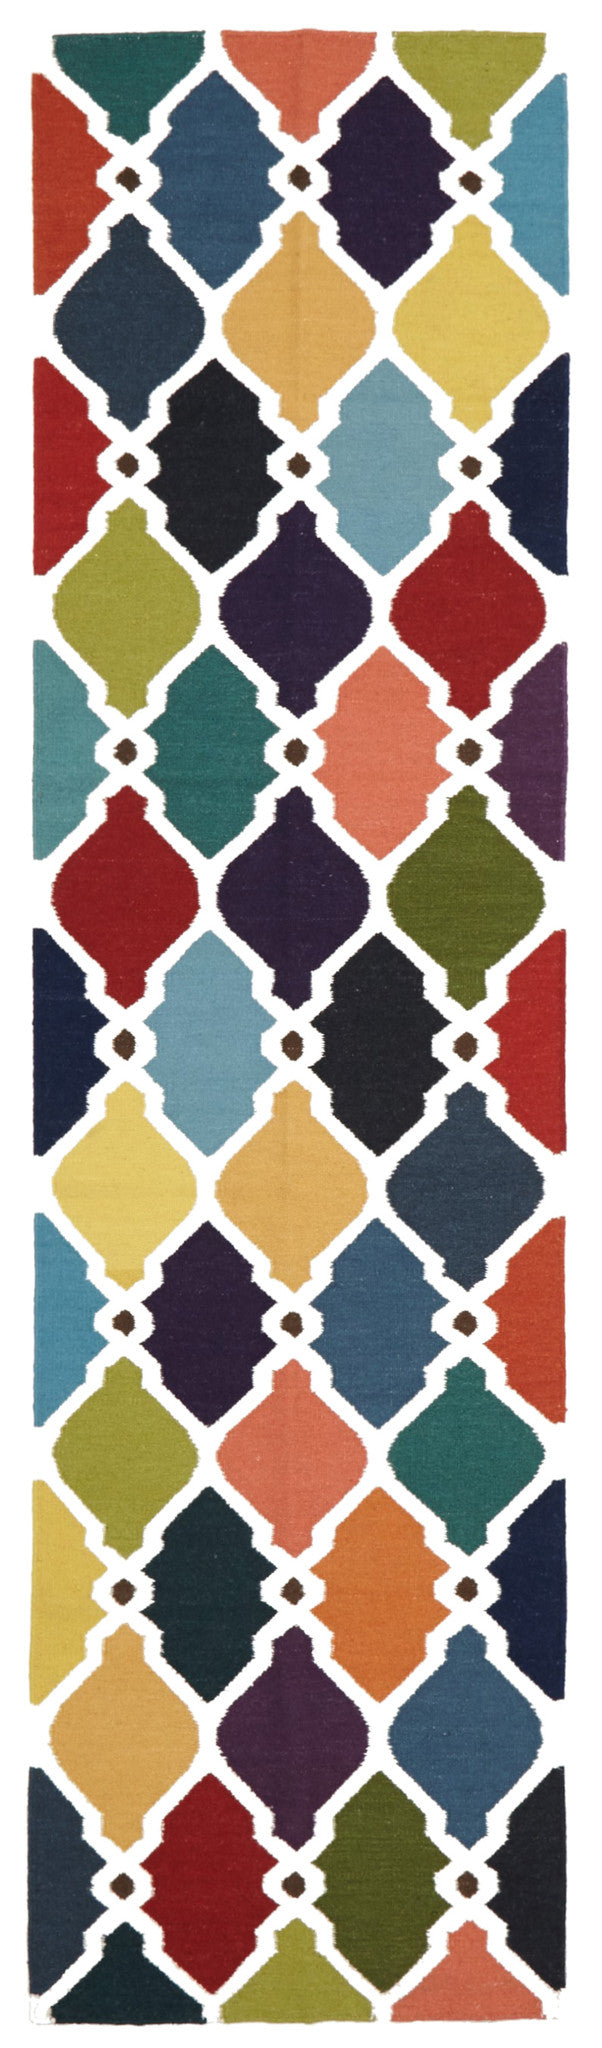 Rio Flat Weave Rug Multi - MaddieBelle